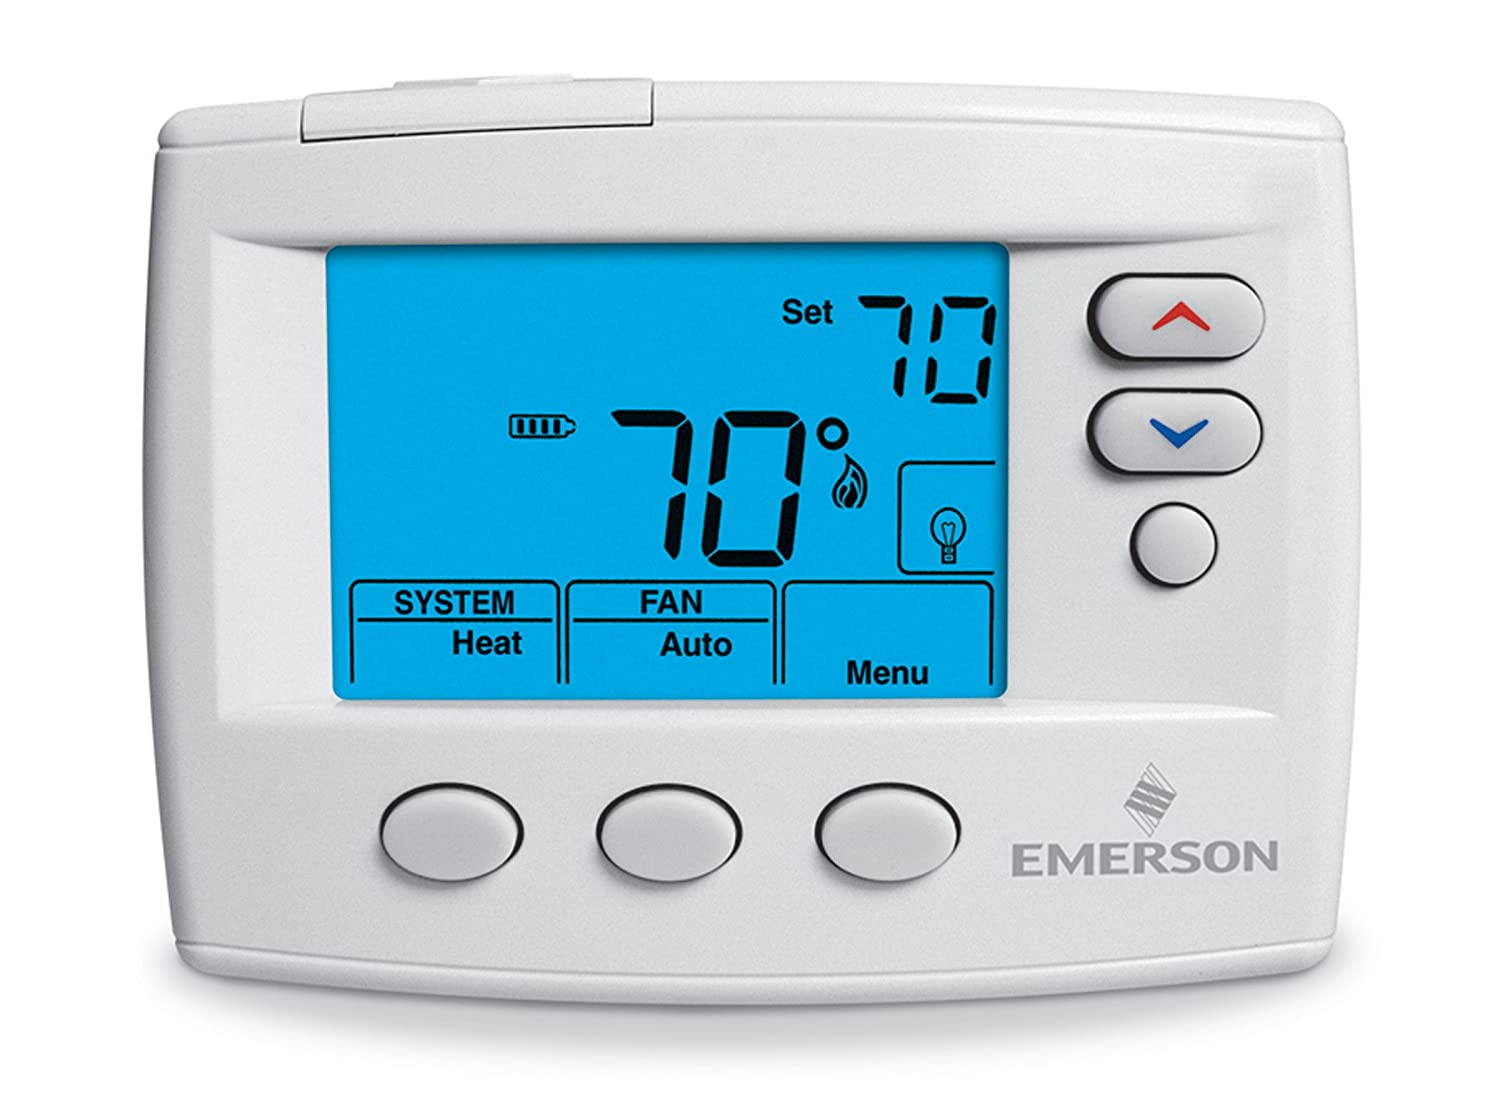 81w%2BvF7knGL._SL1500_ emerson 1f86 0471 single stage, non programmable thermostat, 24 wiring diagram emerson digital thermostat at reclaimingppi.co